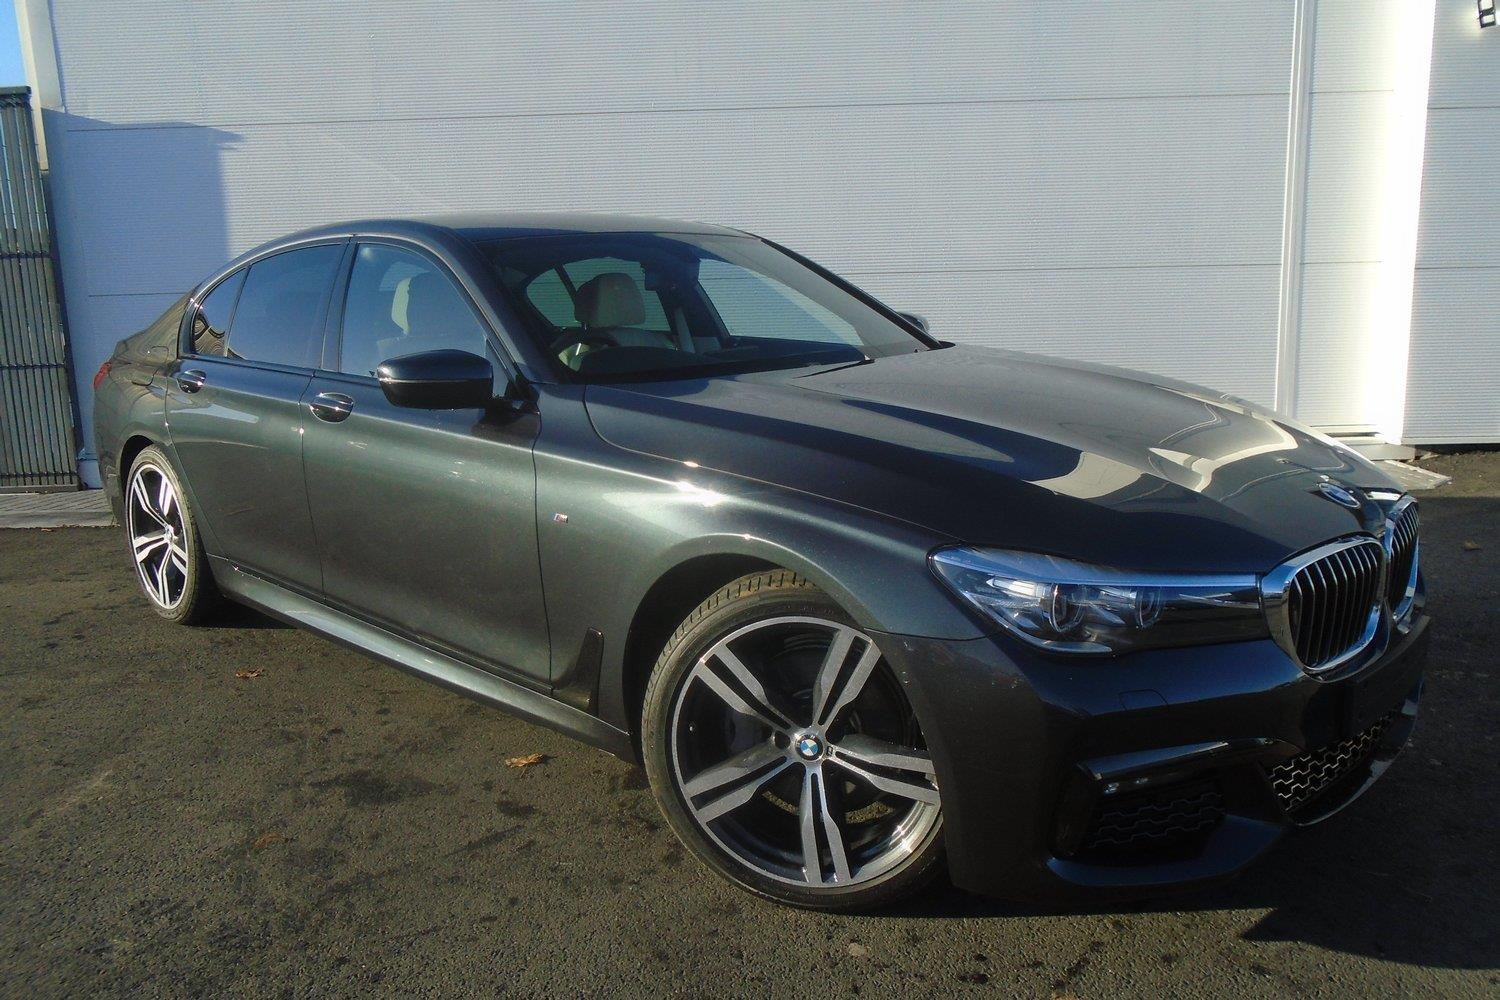 BMW 7 Series Saloon DA66ZVT - Image 2